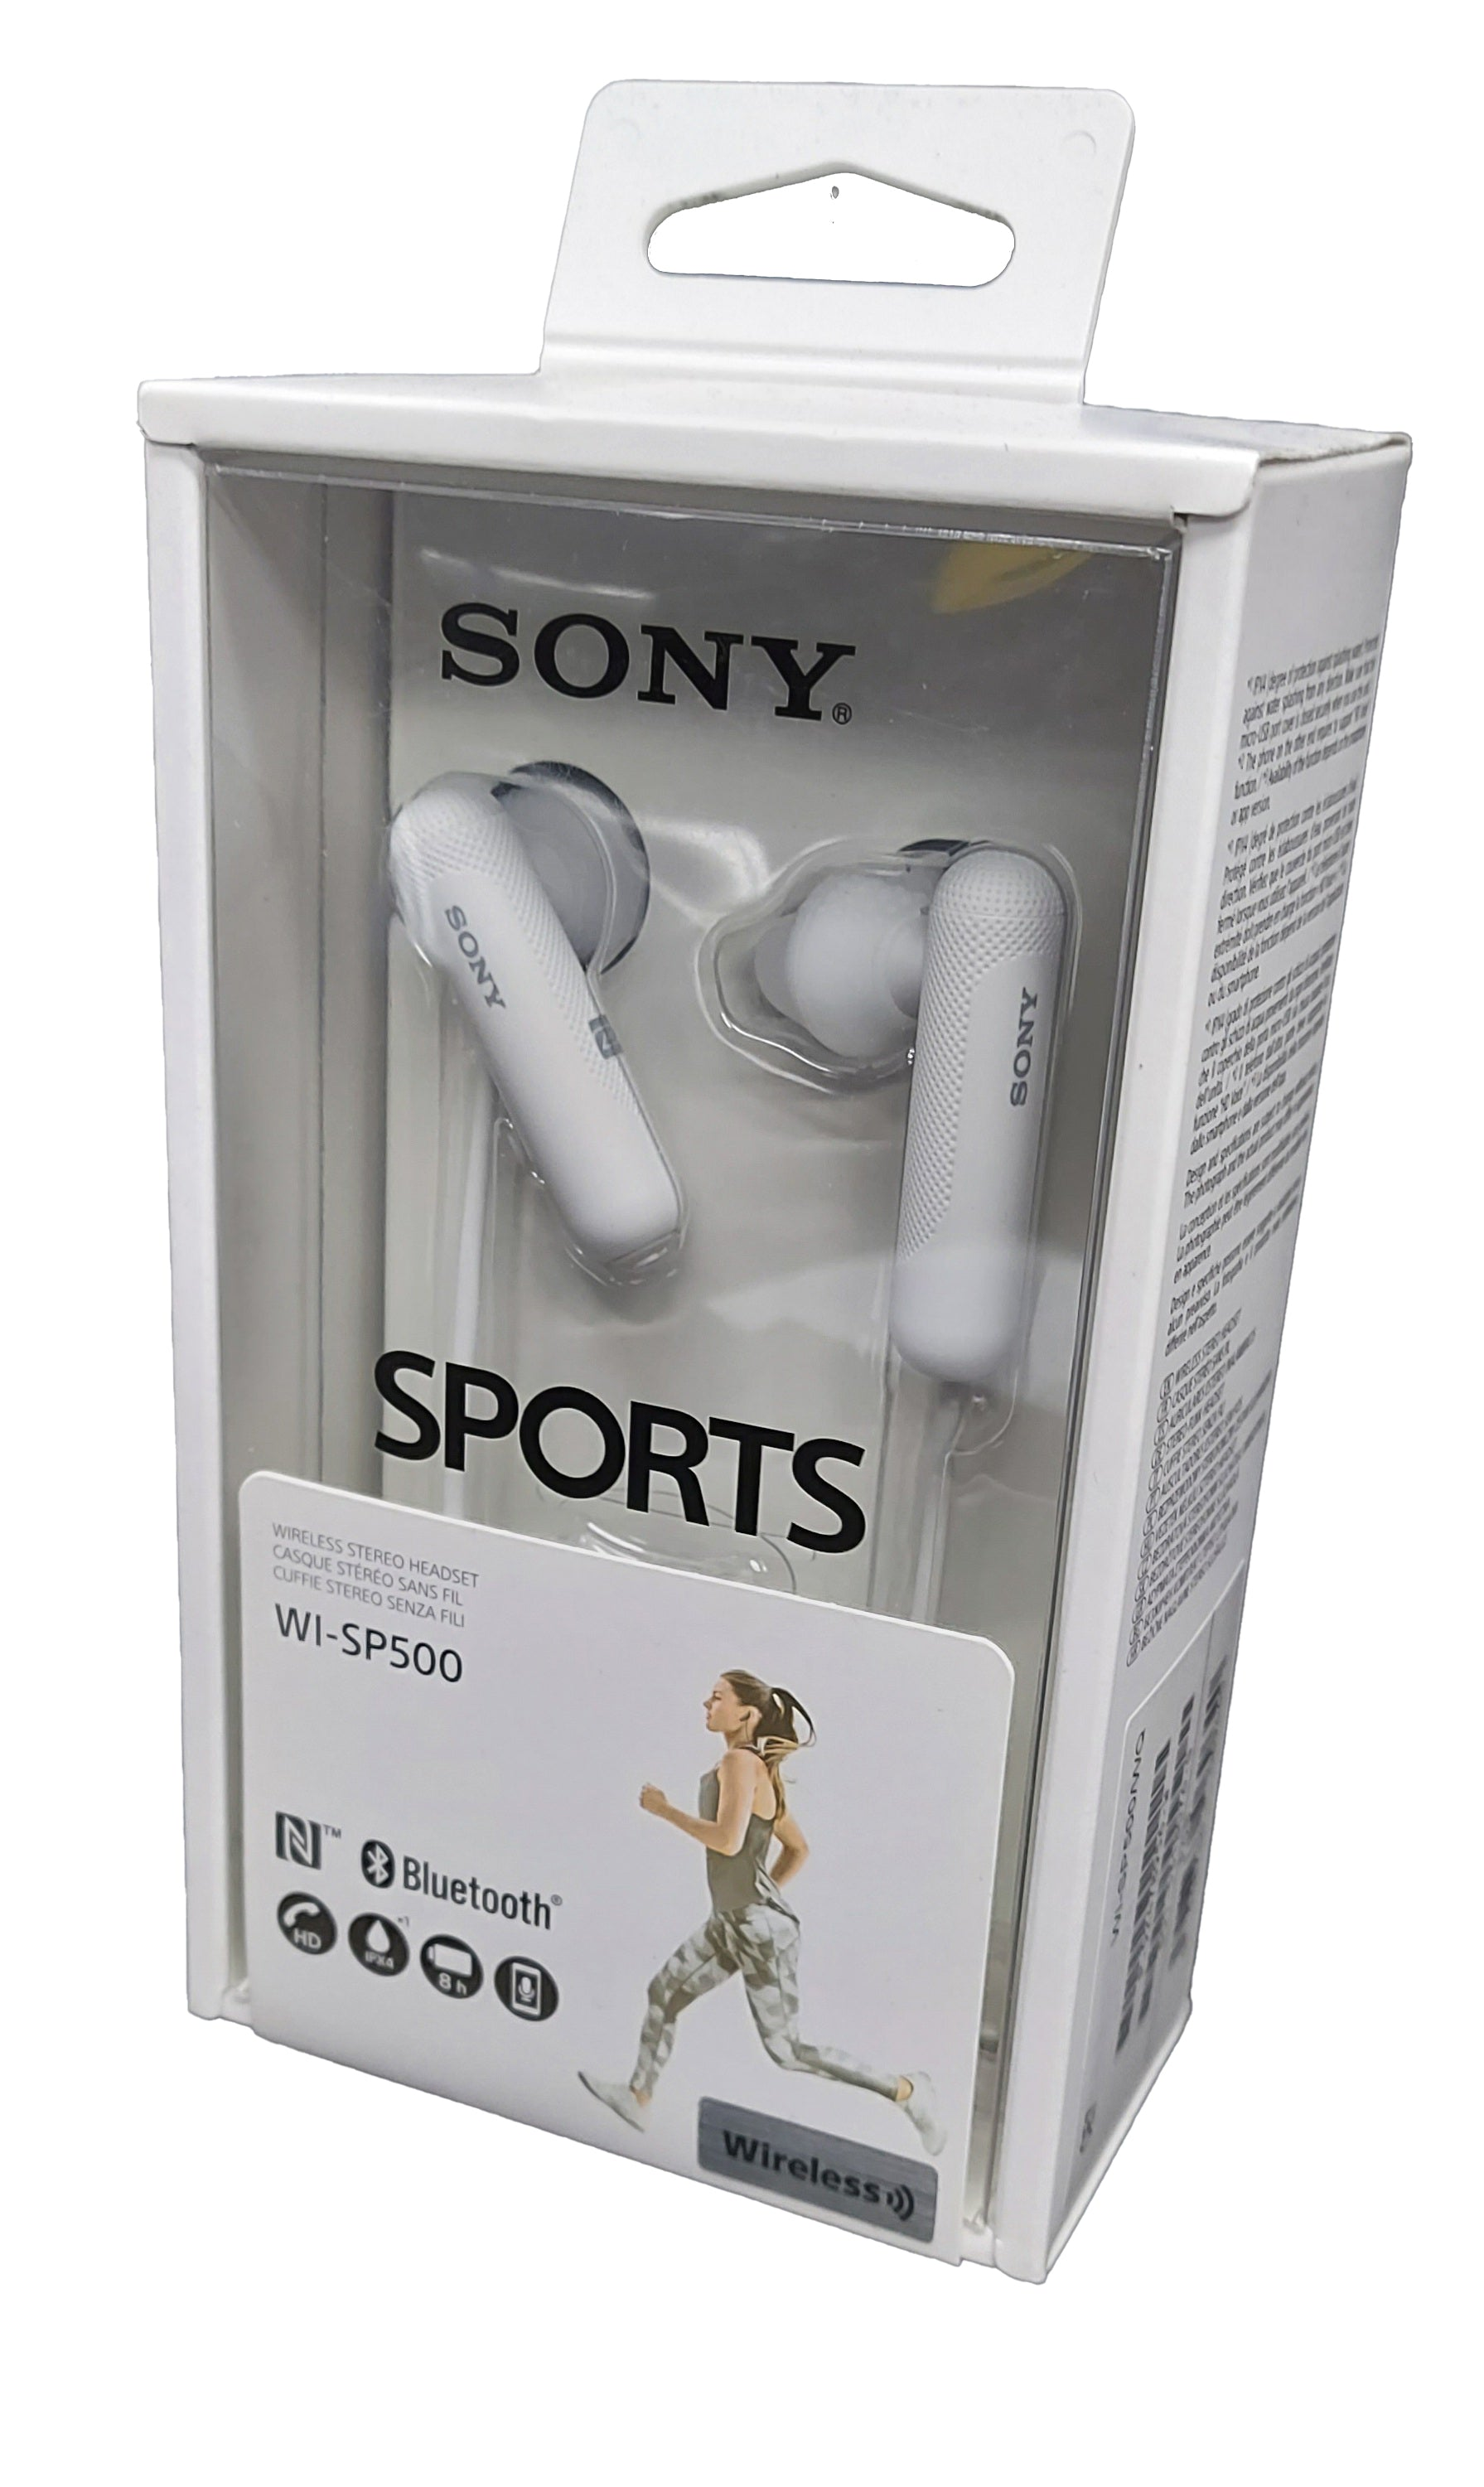 Sony WI-SP500 White In-Ear Only Headsets Wireless Stereo Headset HD Call